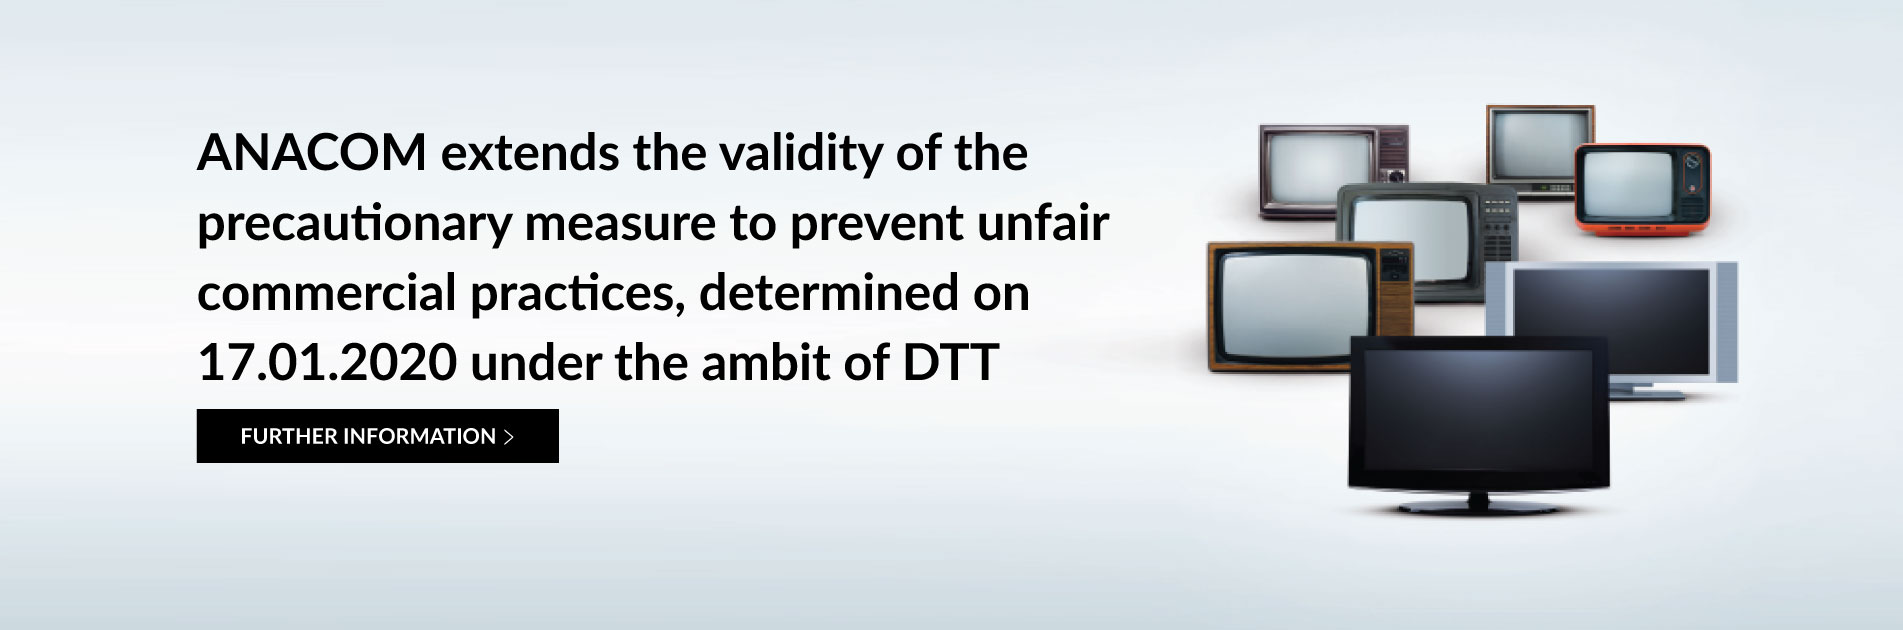 ANACOM extends the validity of the precautionary measure to prevent unfair commercial practices, determined on 17.01.2020 under the ambit of DTT